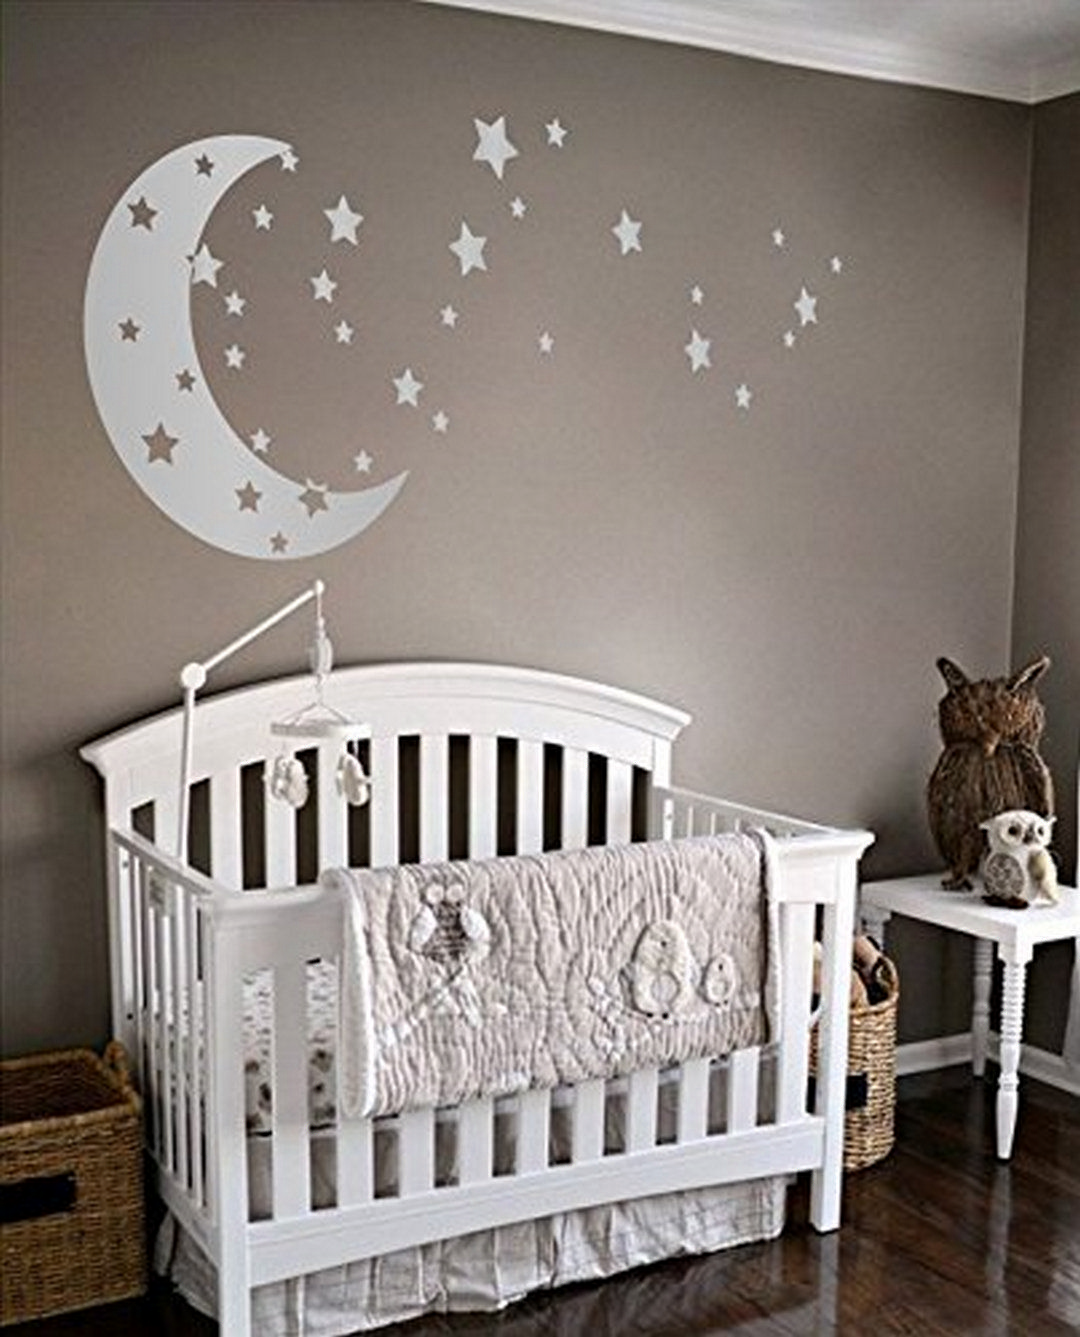 Baby Room Ideas Nursery Themes And Decor: Moonee Pond Gable House: A New Modern House With A Walled